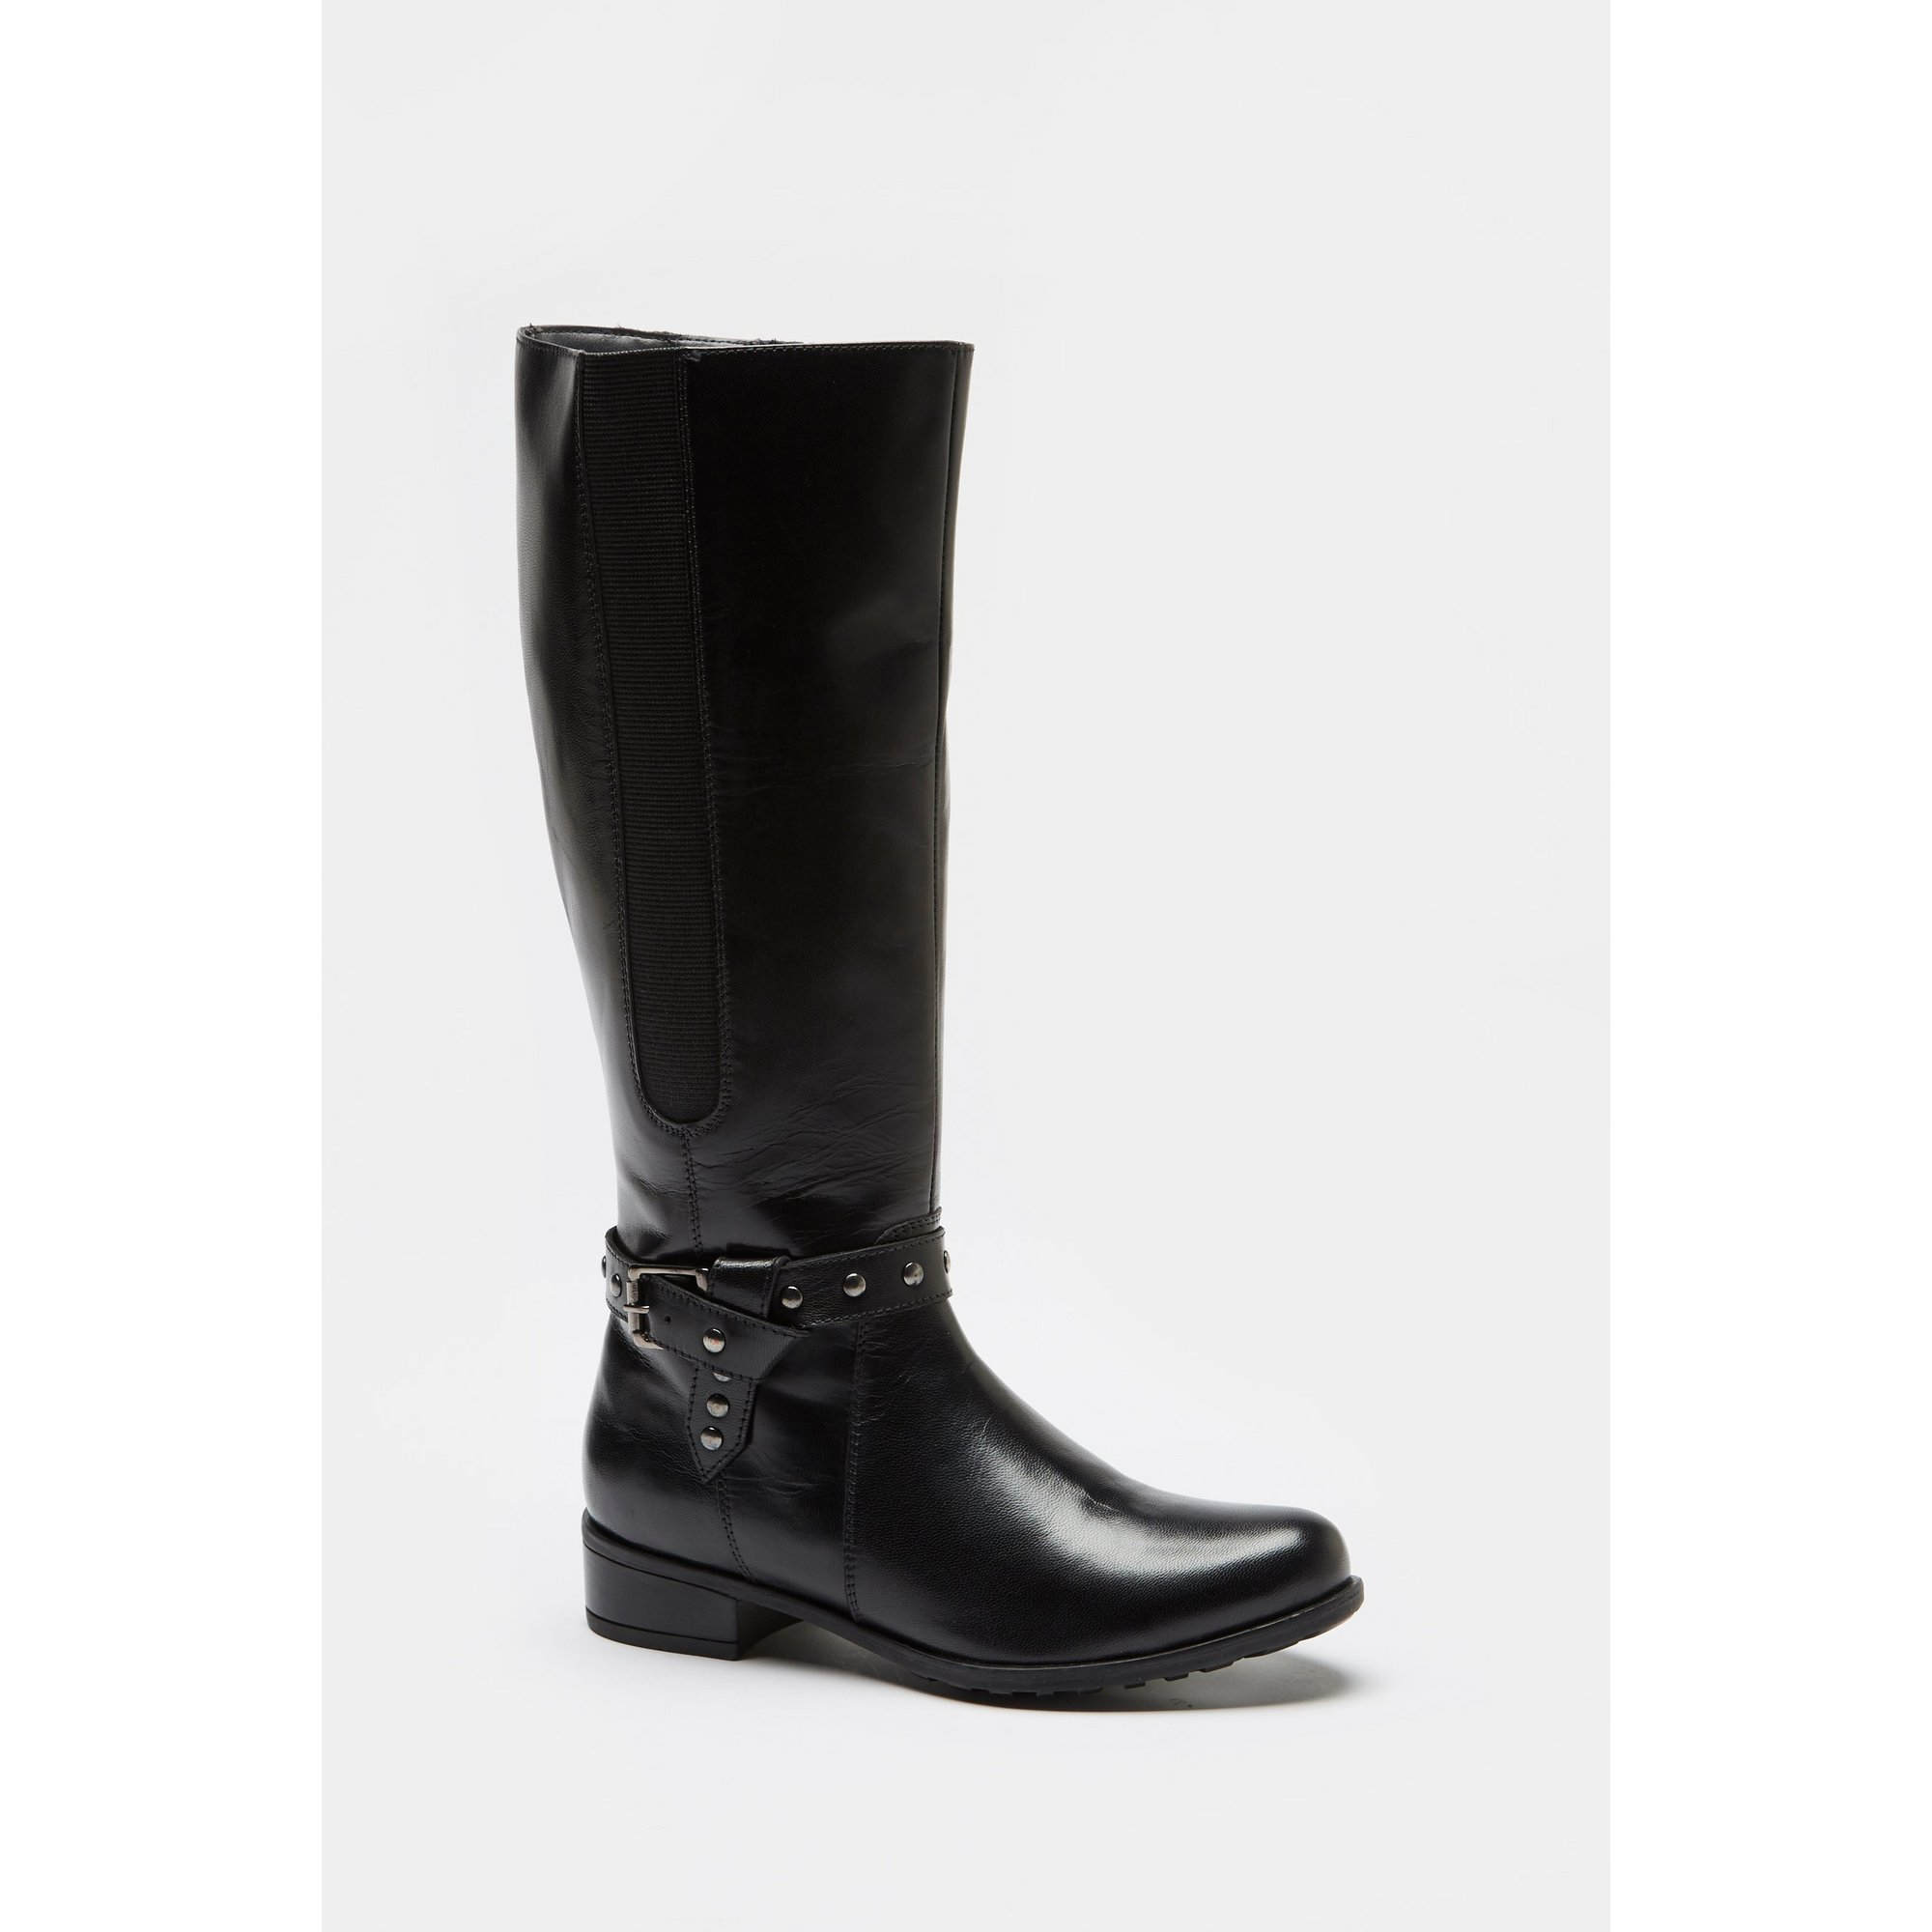 Image of Comfort Plus Strap Knee High Black Boots